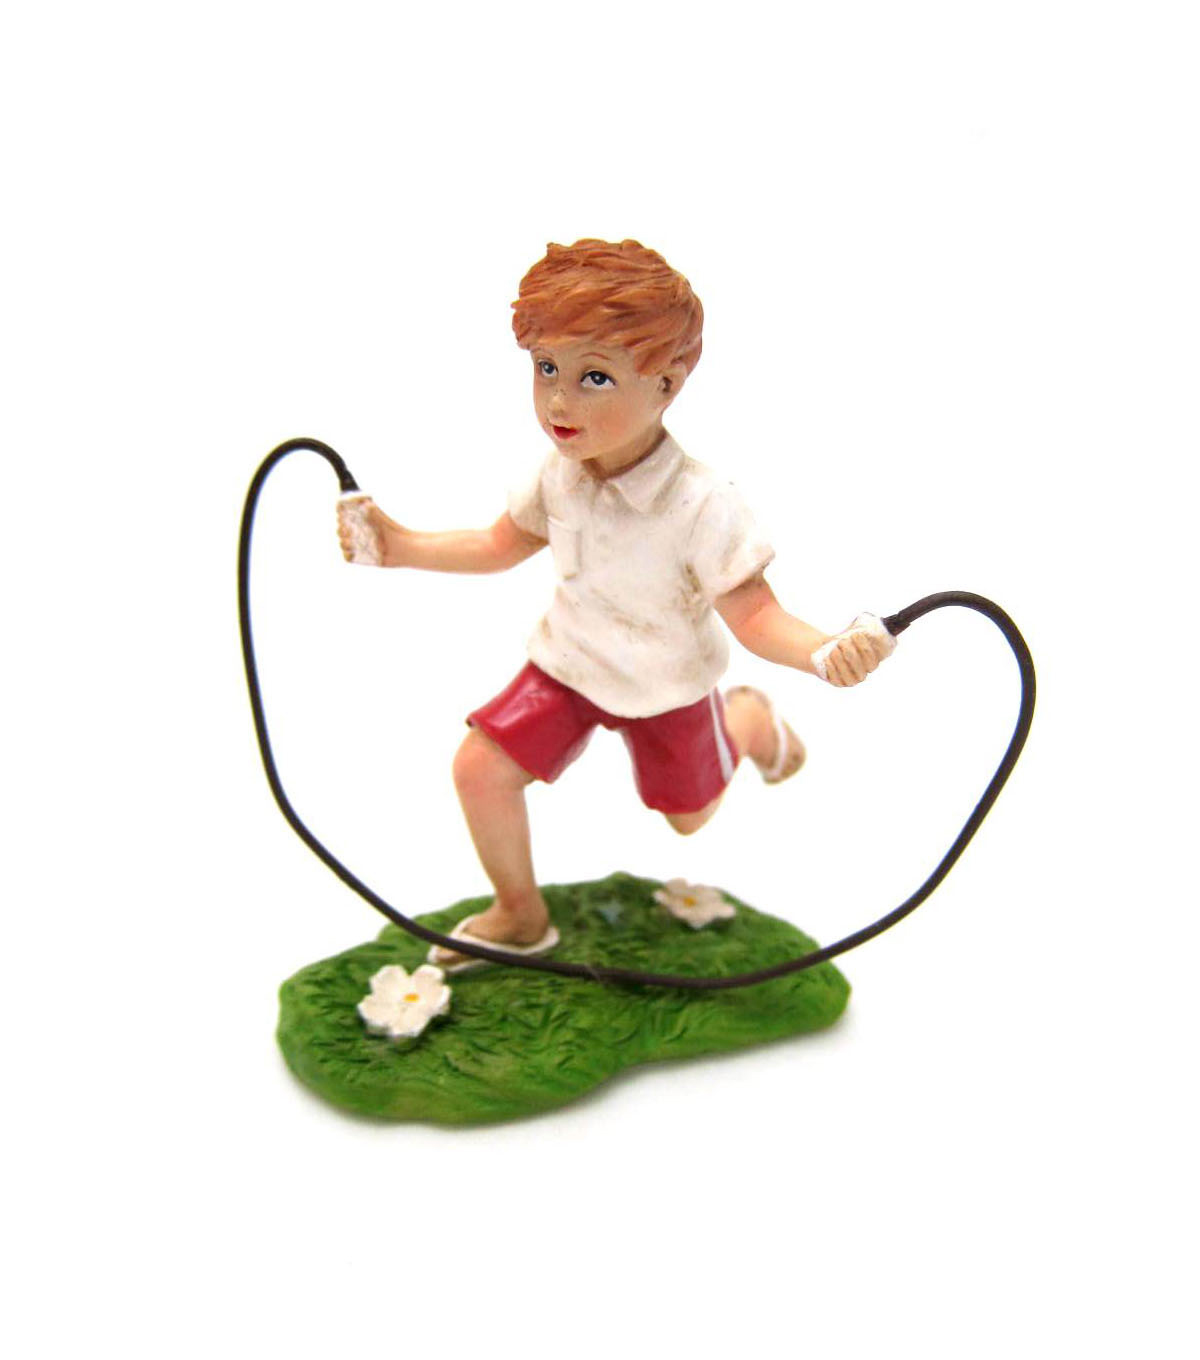 Bloom Room Littles Resin Boy Jumping Rope